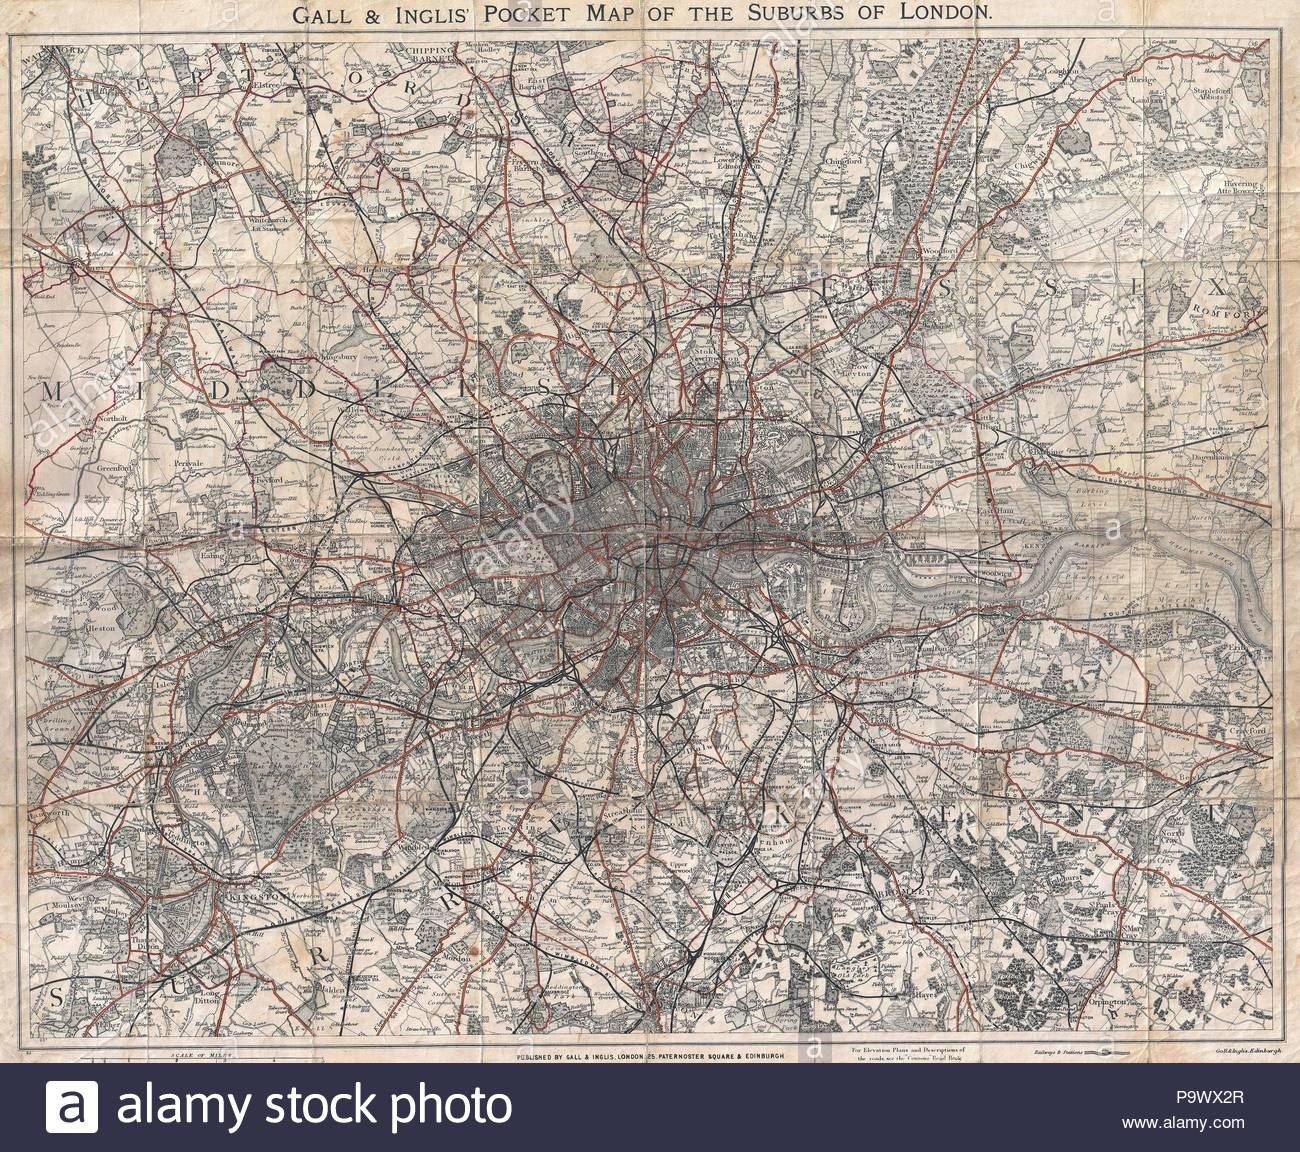 Map Of London 1900.1900 Gall And Inglis Map Of London And Environs Stock Photo